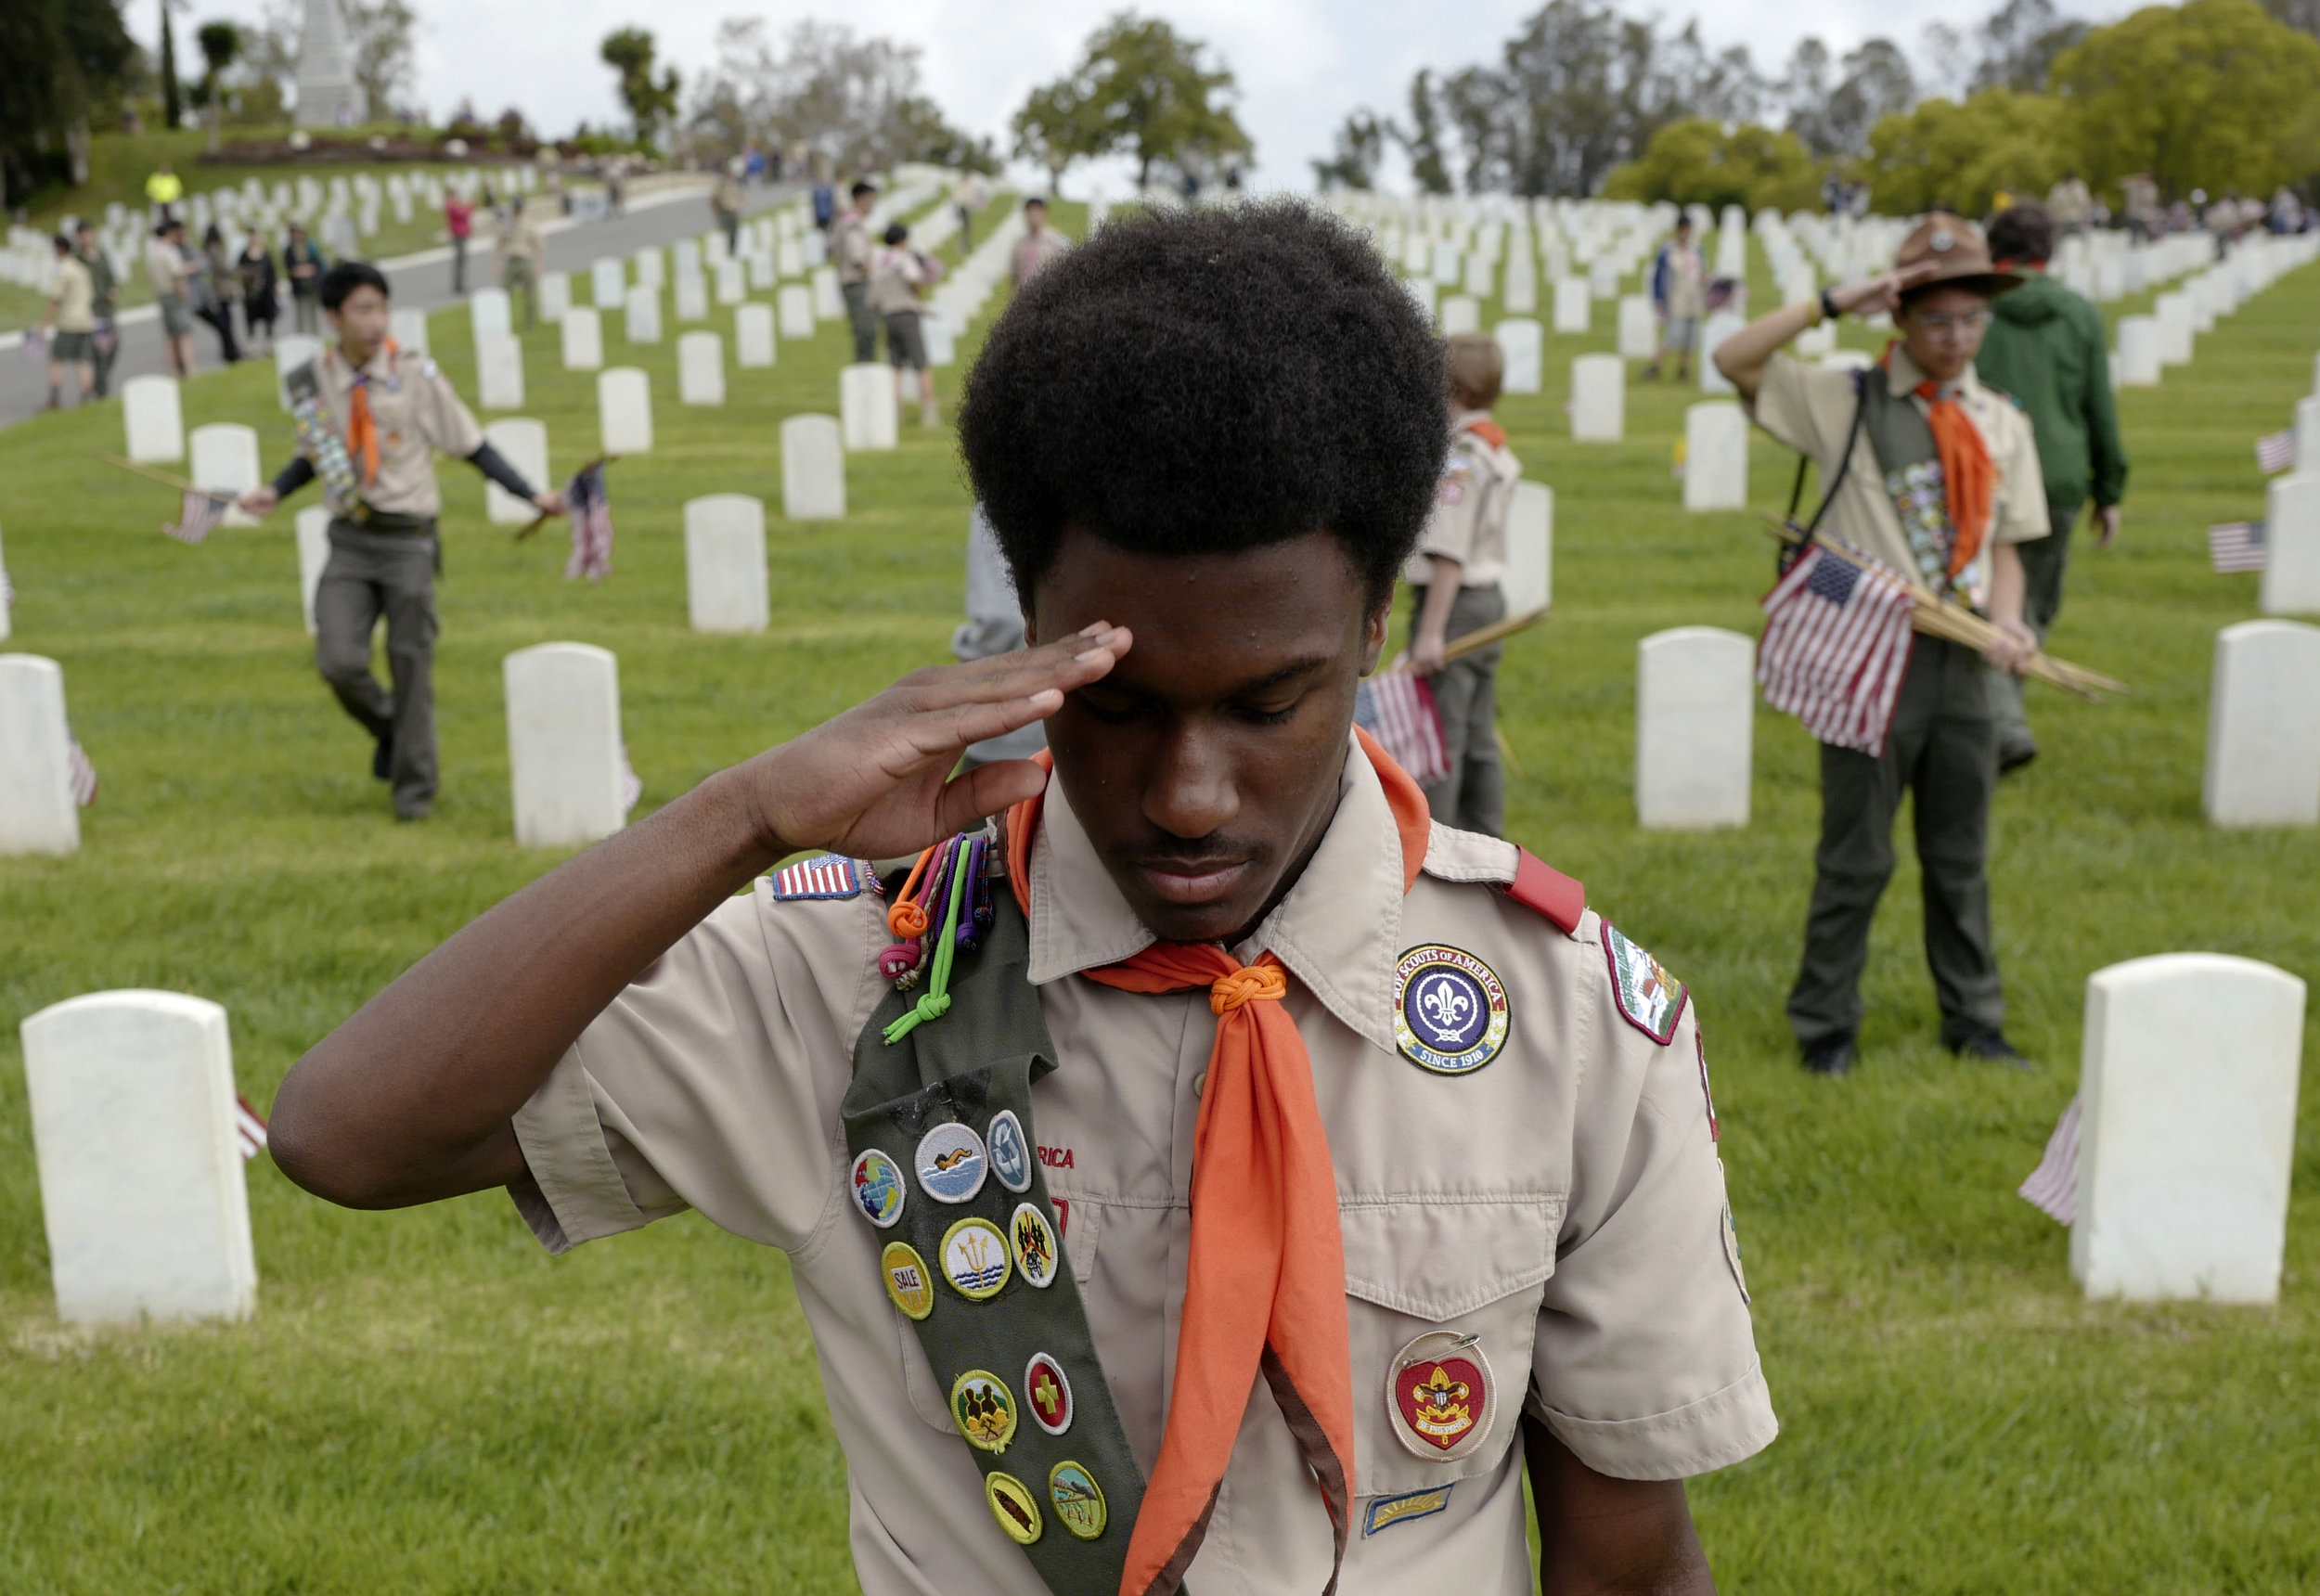 A boy scout salutes after placing a U.S. flag in front of a grave stone at Los Angeles National Cemetery Saturday, May 26, 2018, for the Memorial Day celebrations in Los Angeles.